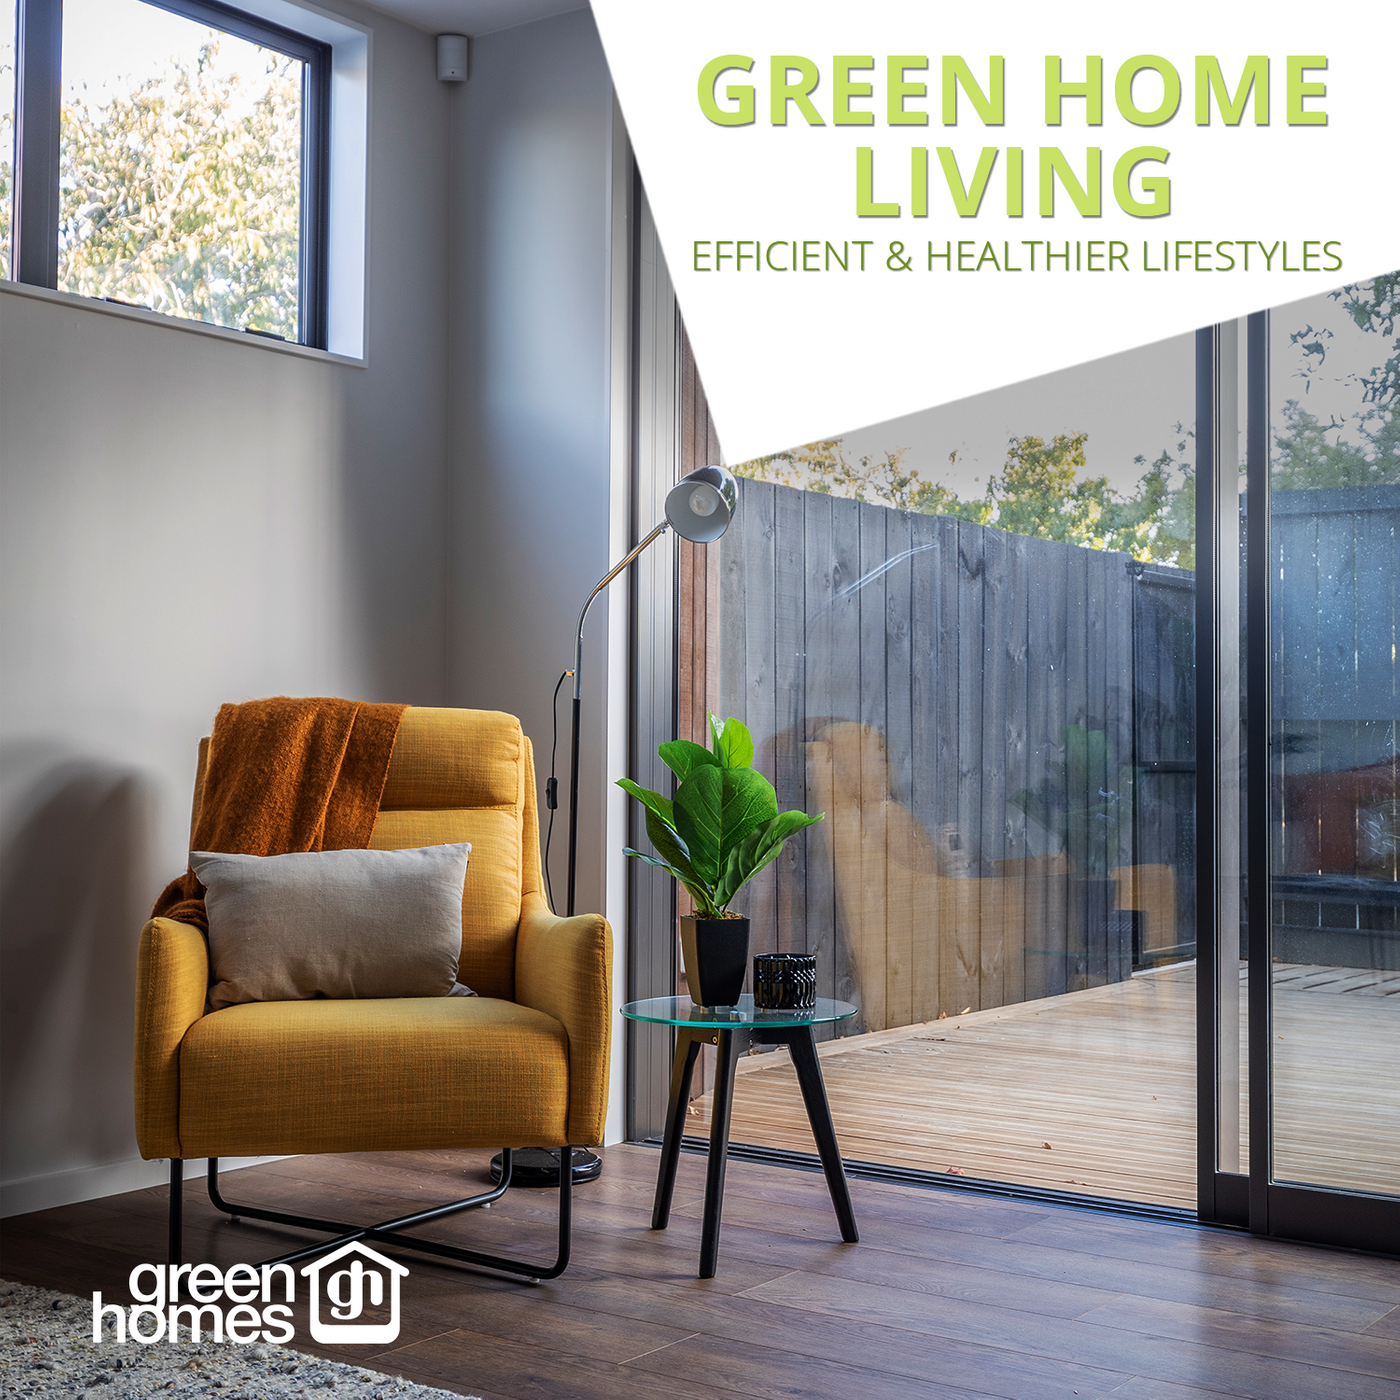 Green Home Living: Efficient & Healthier Lifestyles